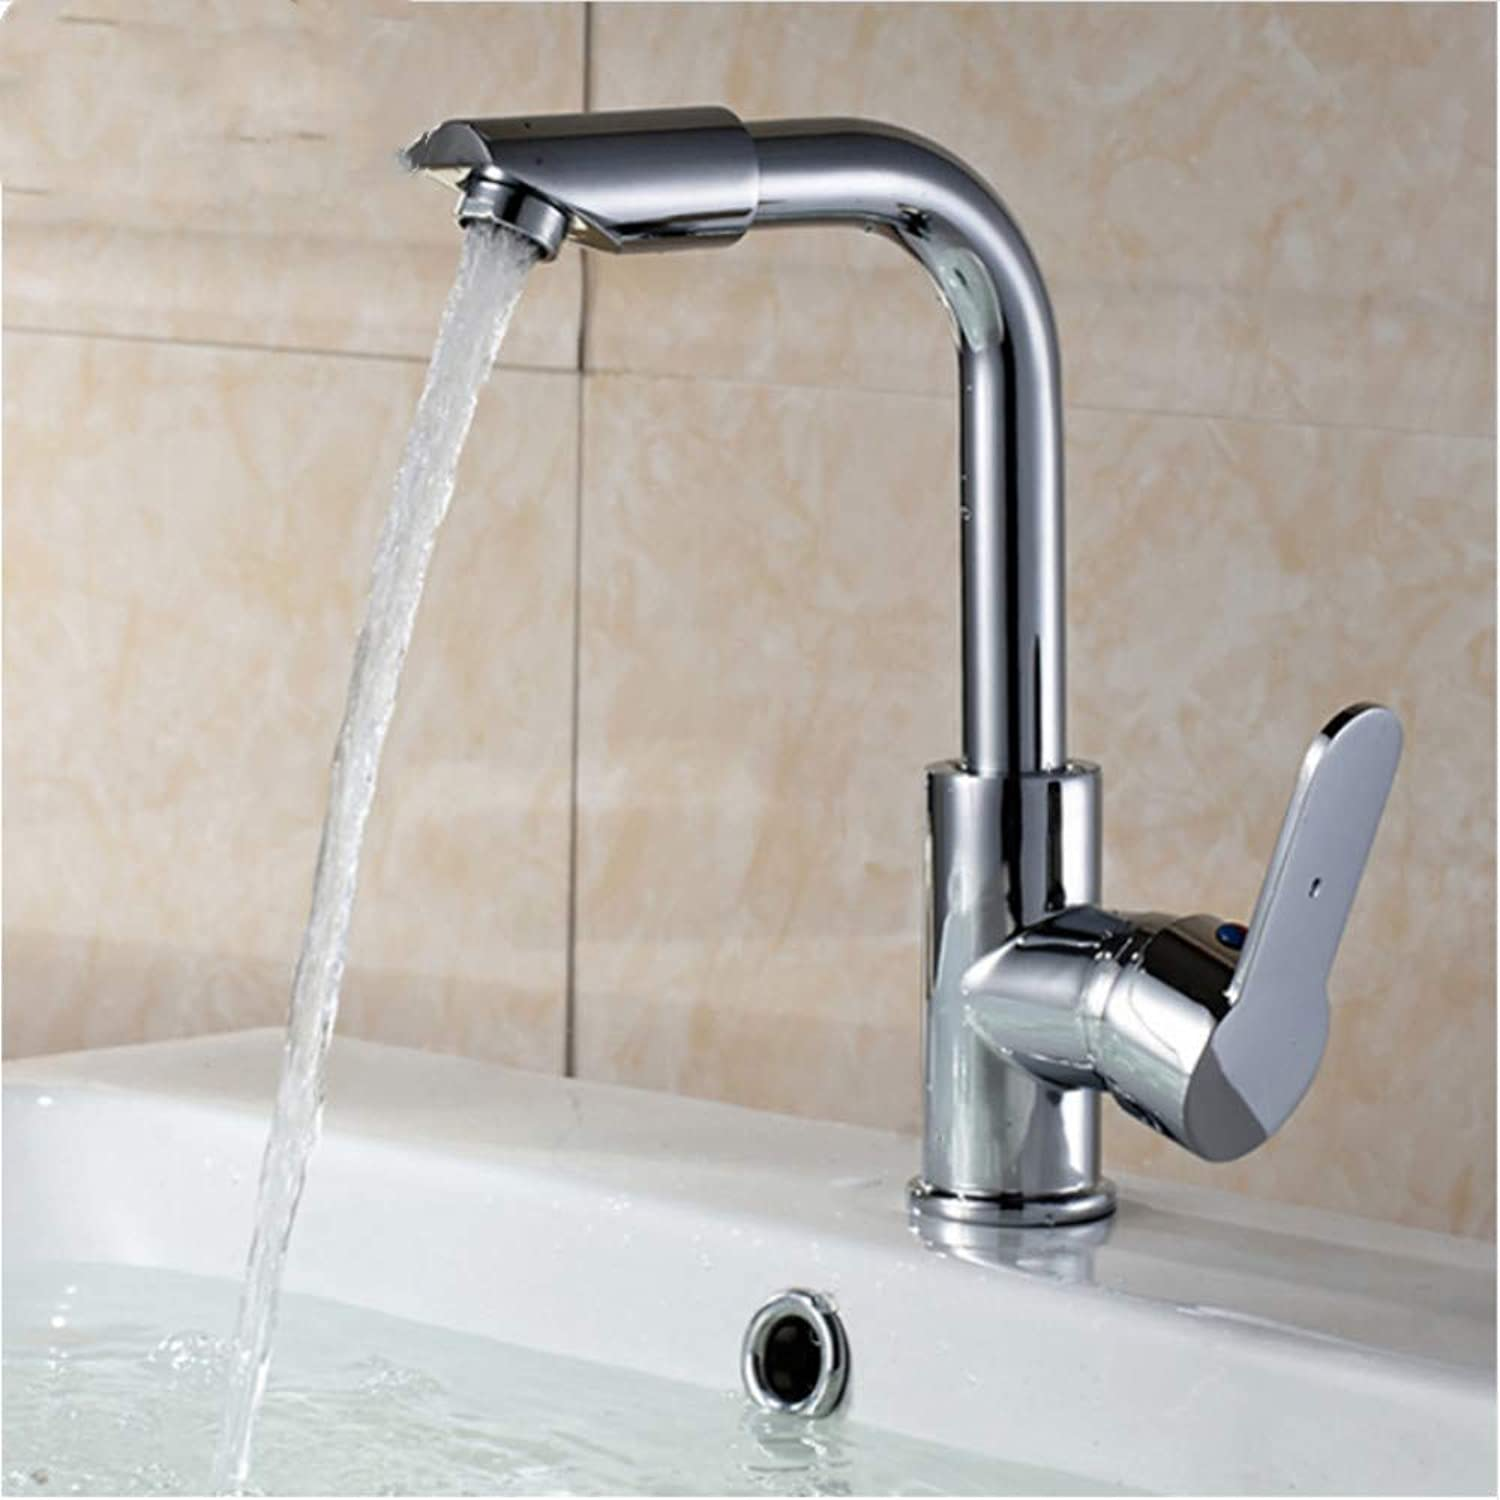 LLLYZZ Chrome Finish 360 redating Bathroom Basin Faucet Single Holder hot and Cold Water washbasin Mixer taps Robinet